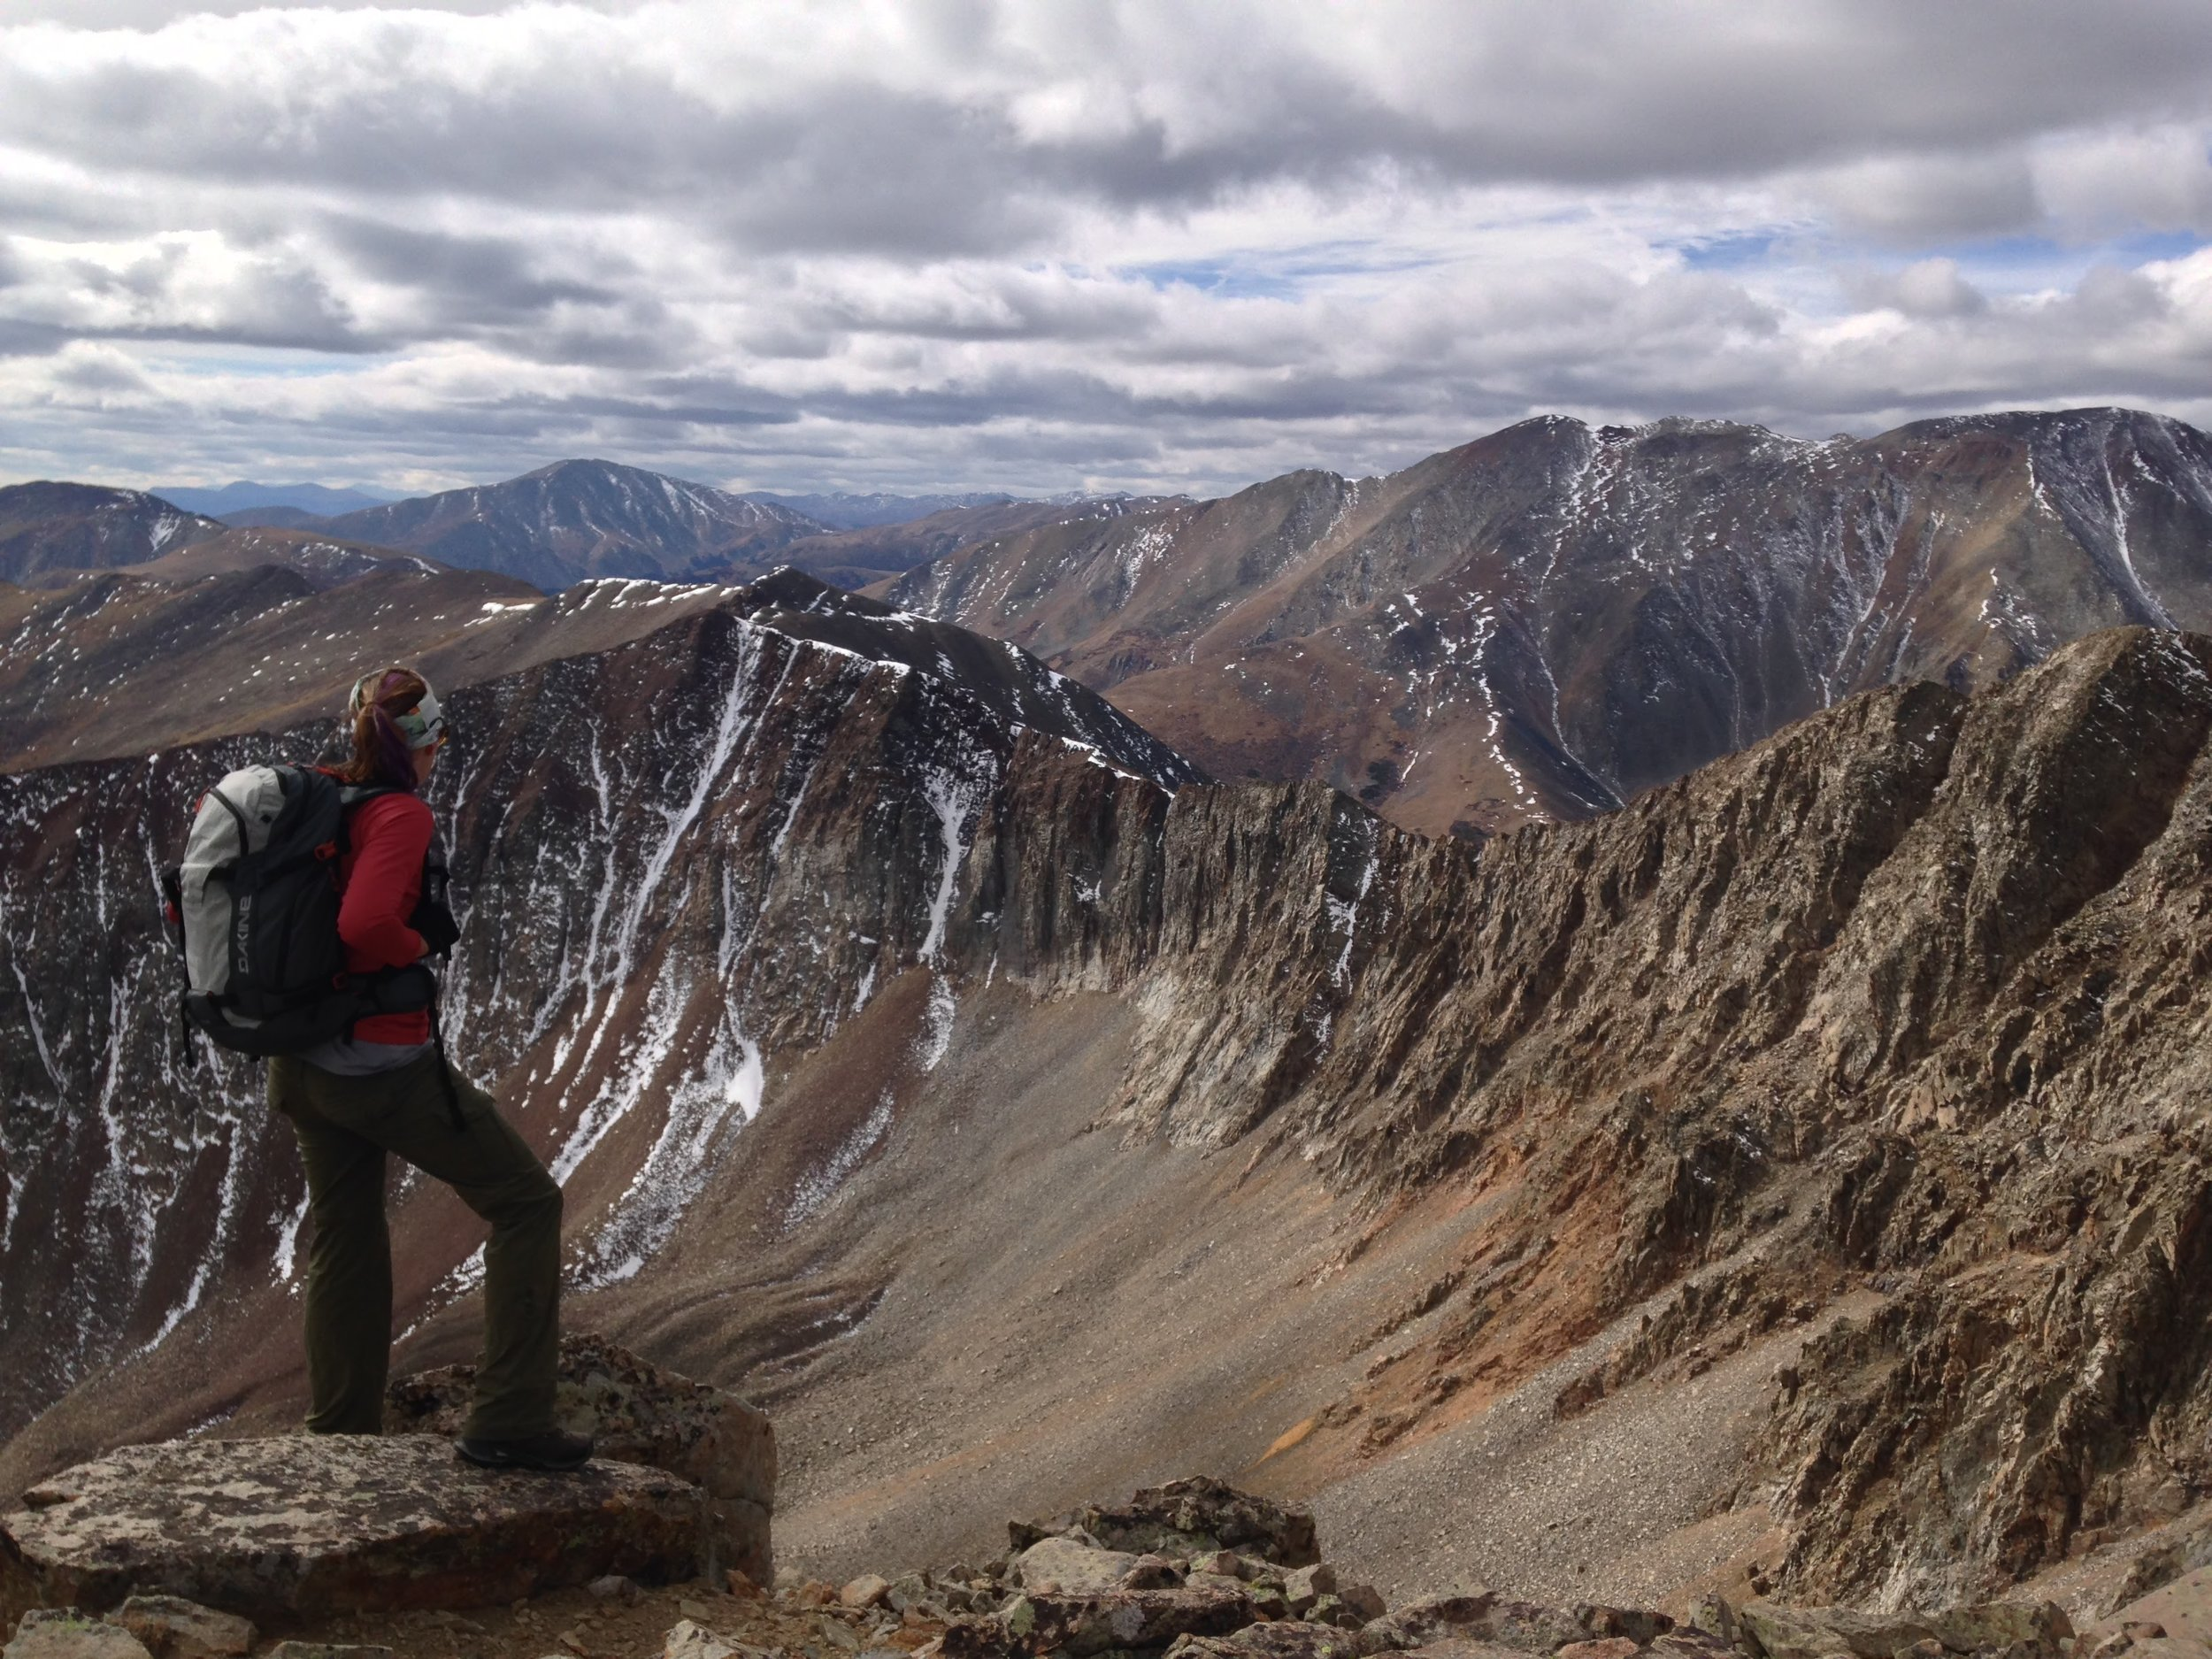 My favorite false summit of all time was this on on Mt Guyot, CO (13,376')